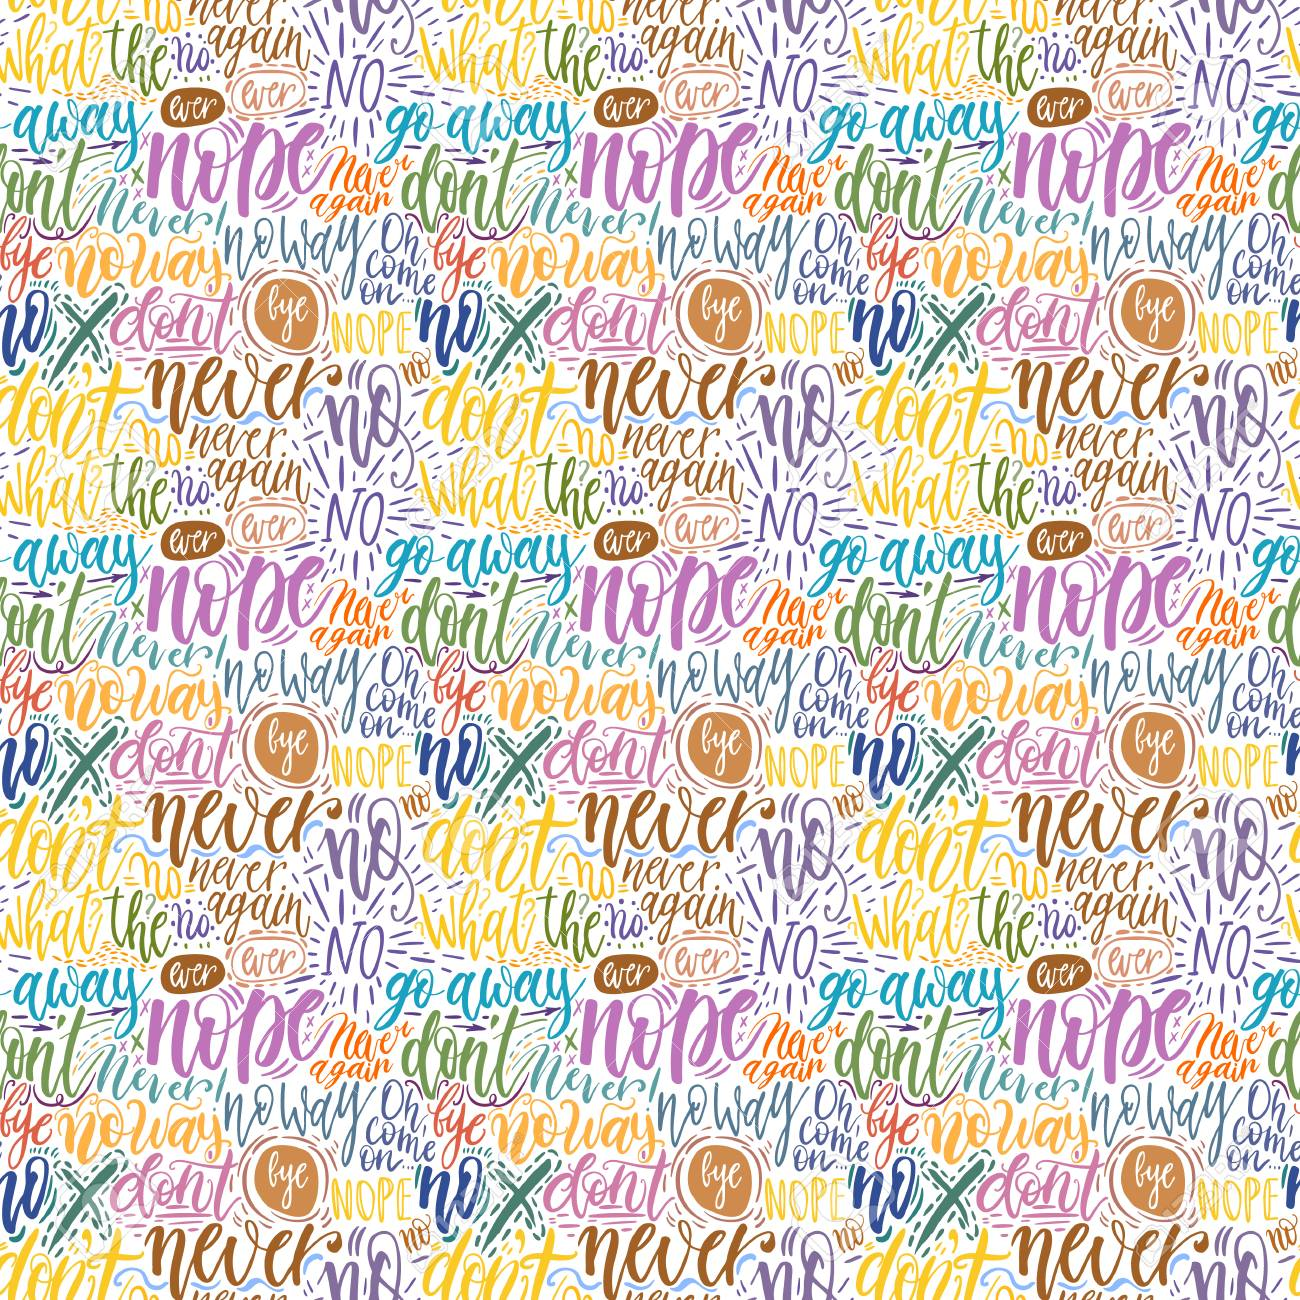 Hand Lettering Doodle Seamless Pattern With Words Of Protest